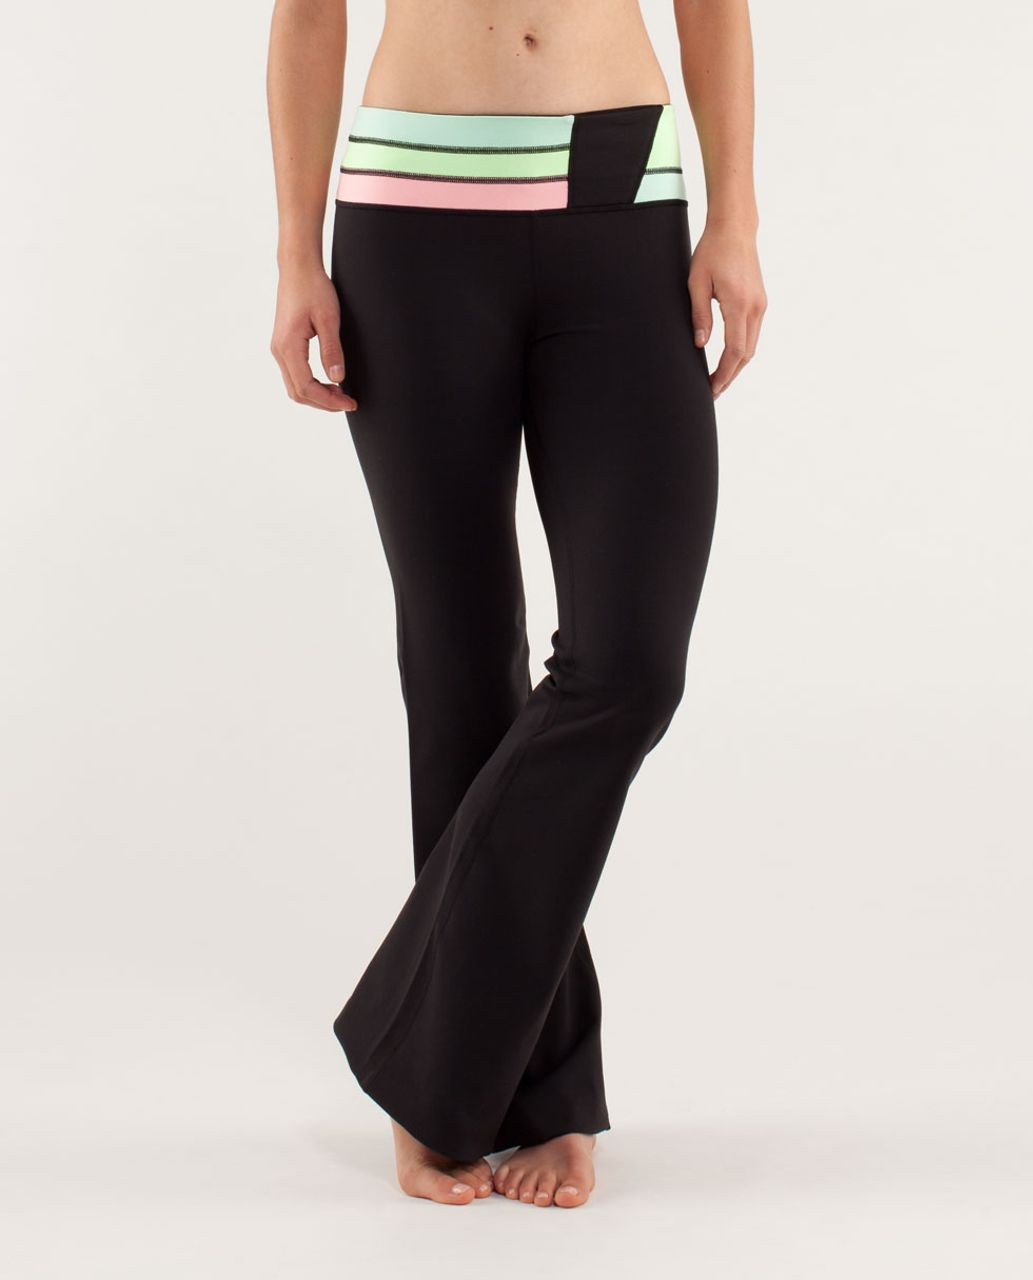 Lululemon Groove Pant *New (Regular) - Black / Quilt Spring13 7